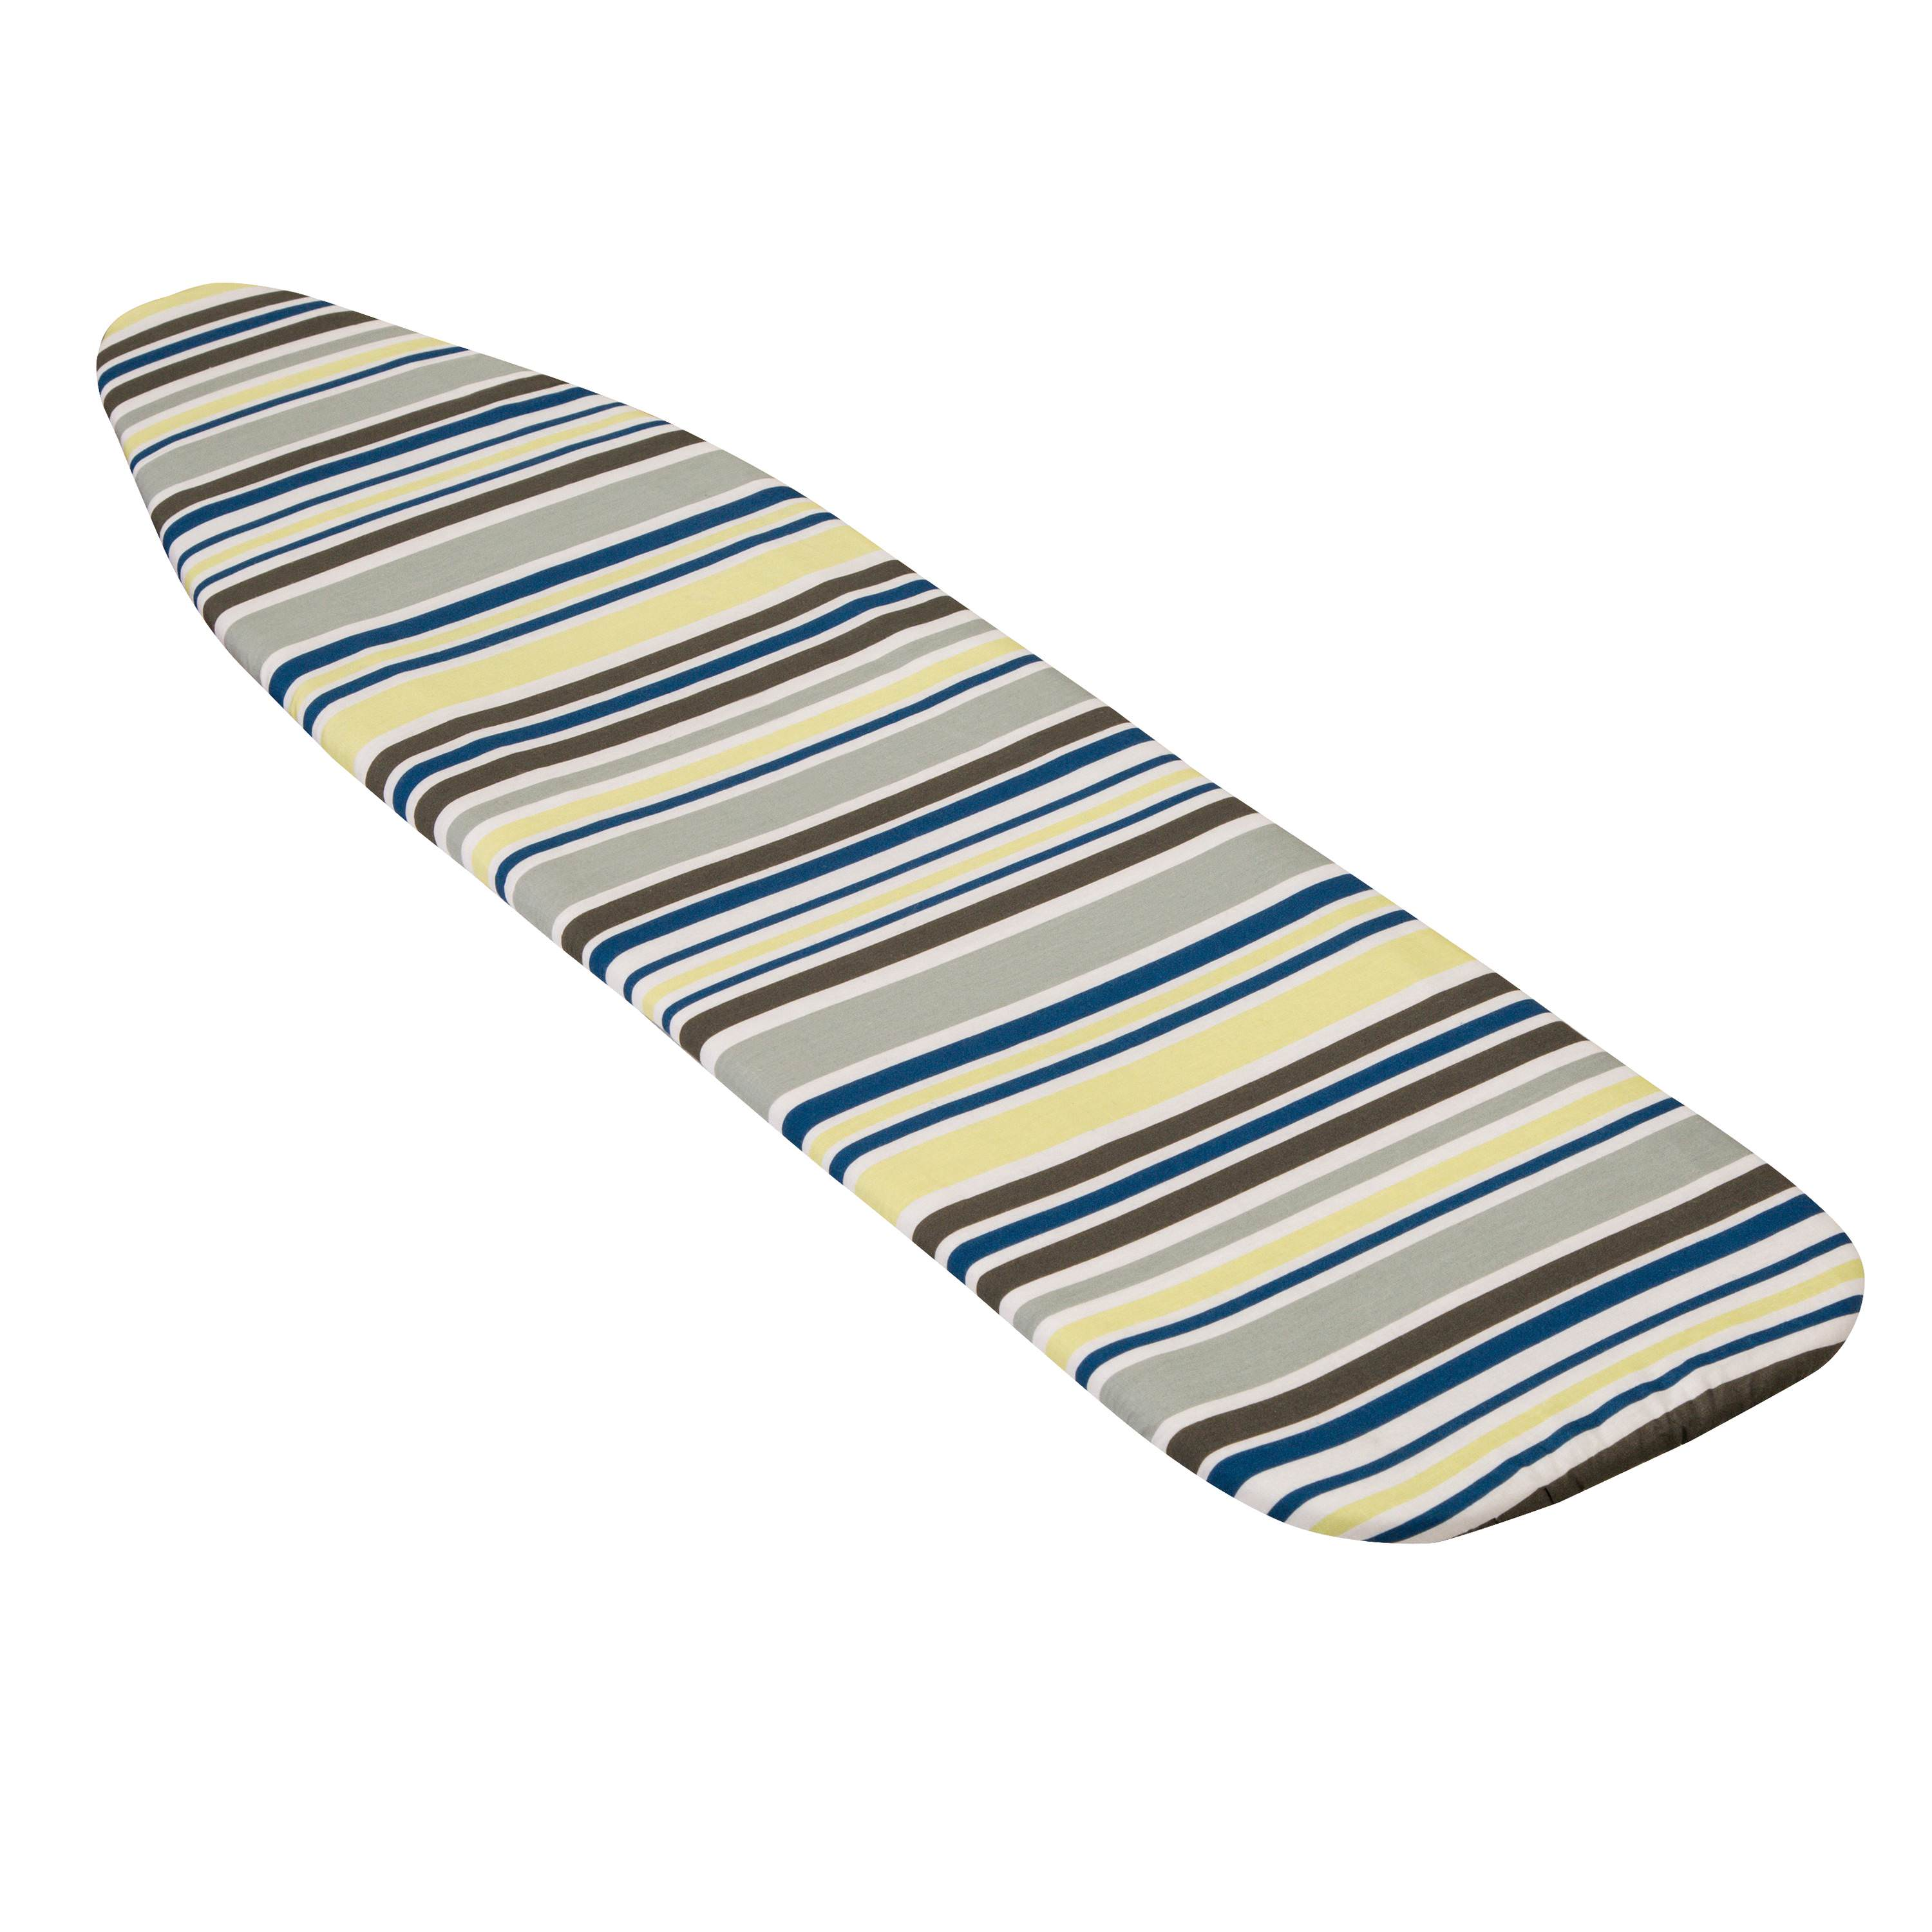 Honey-Can-Do Basic Ironing Board Cover: Stripes